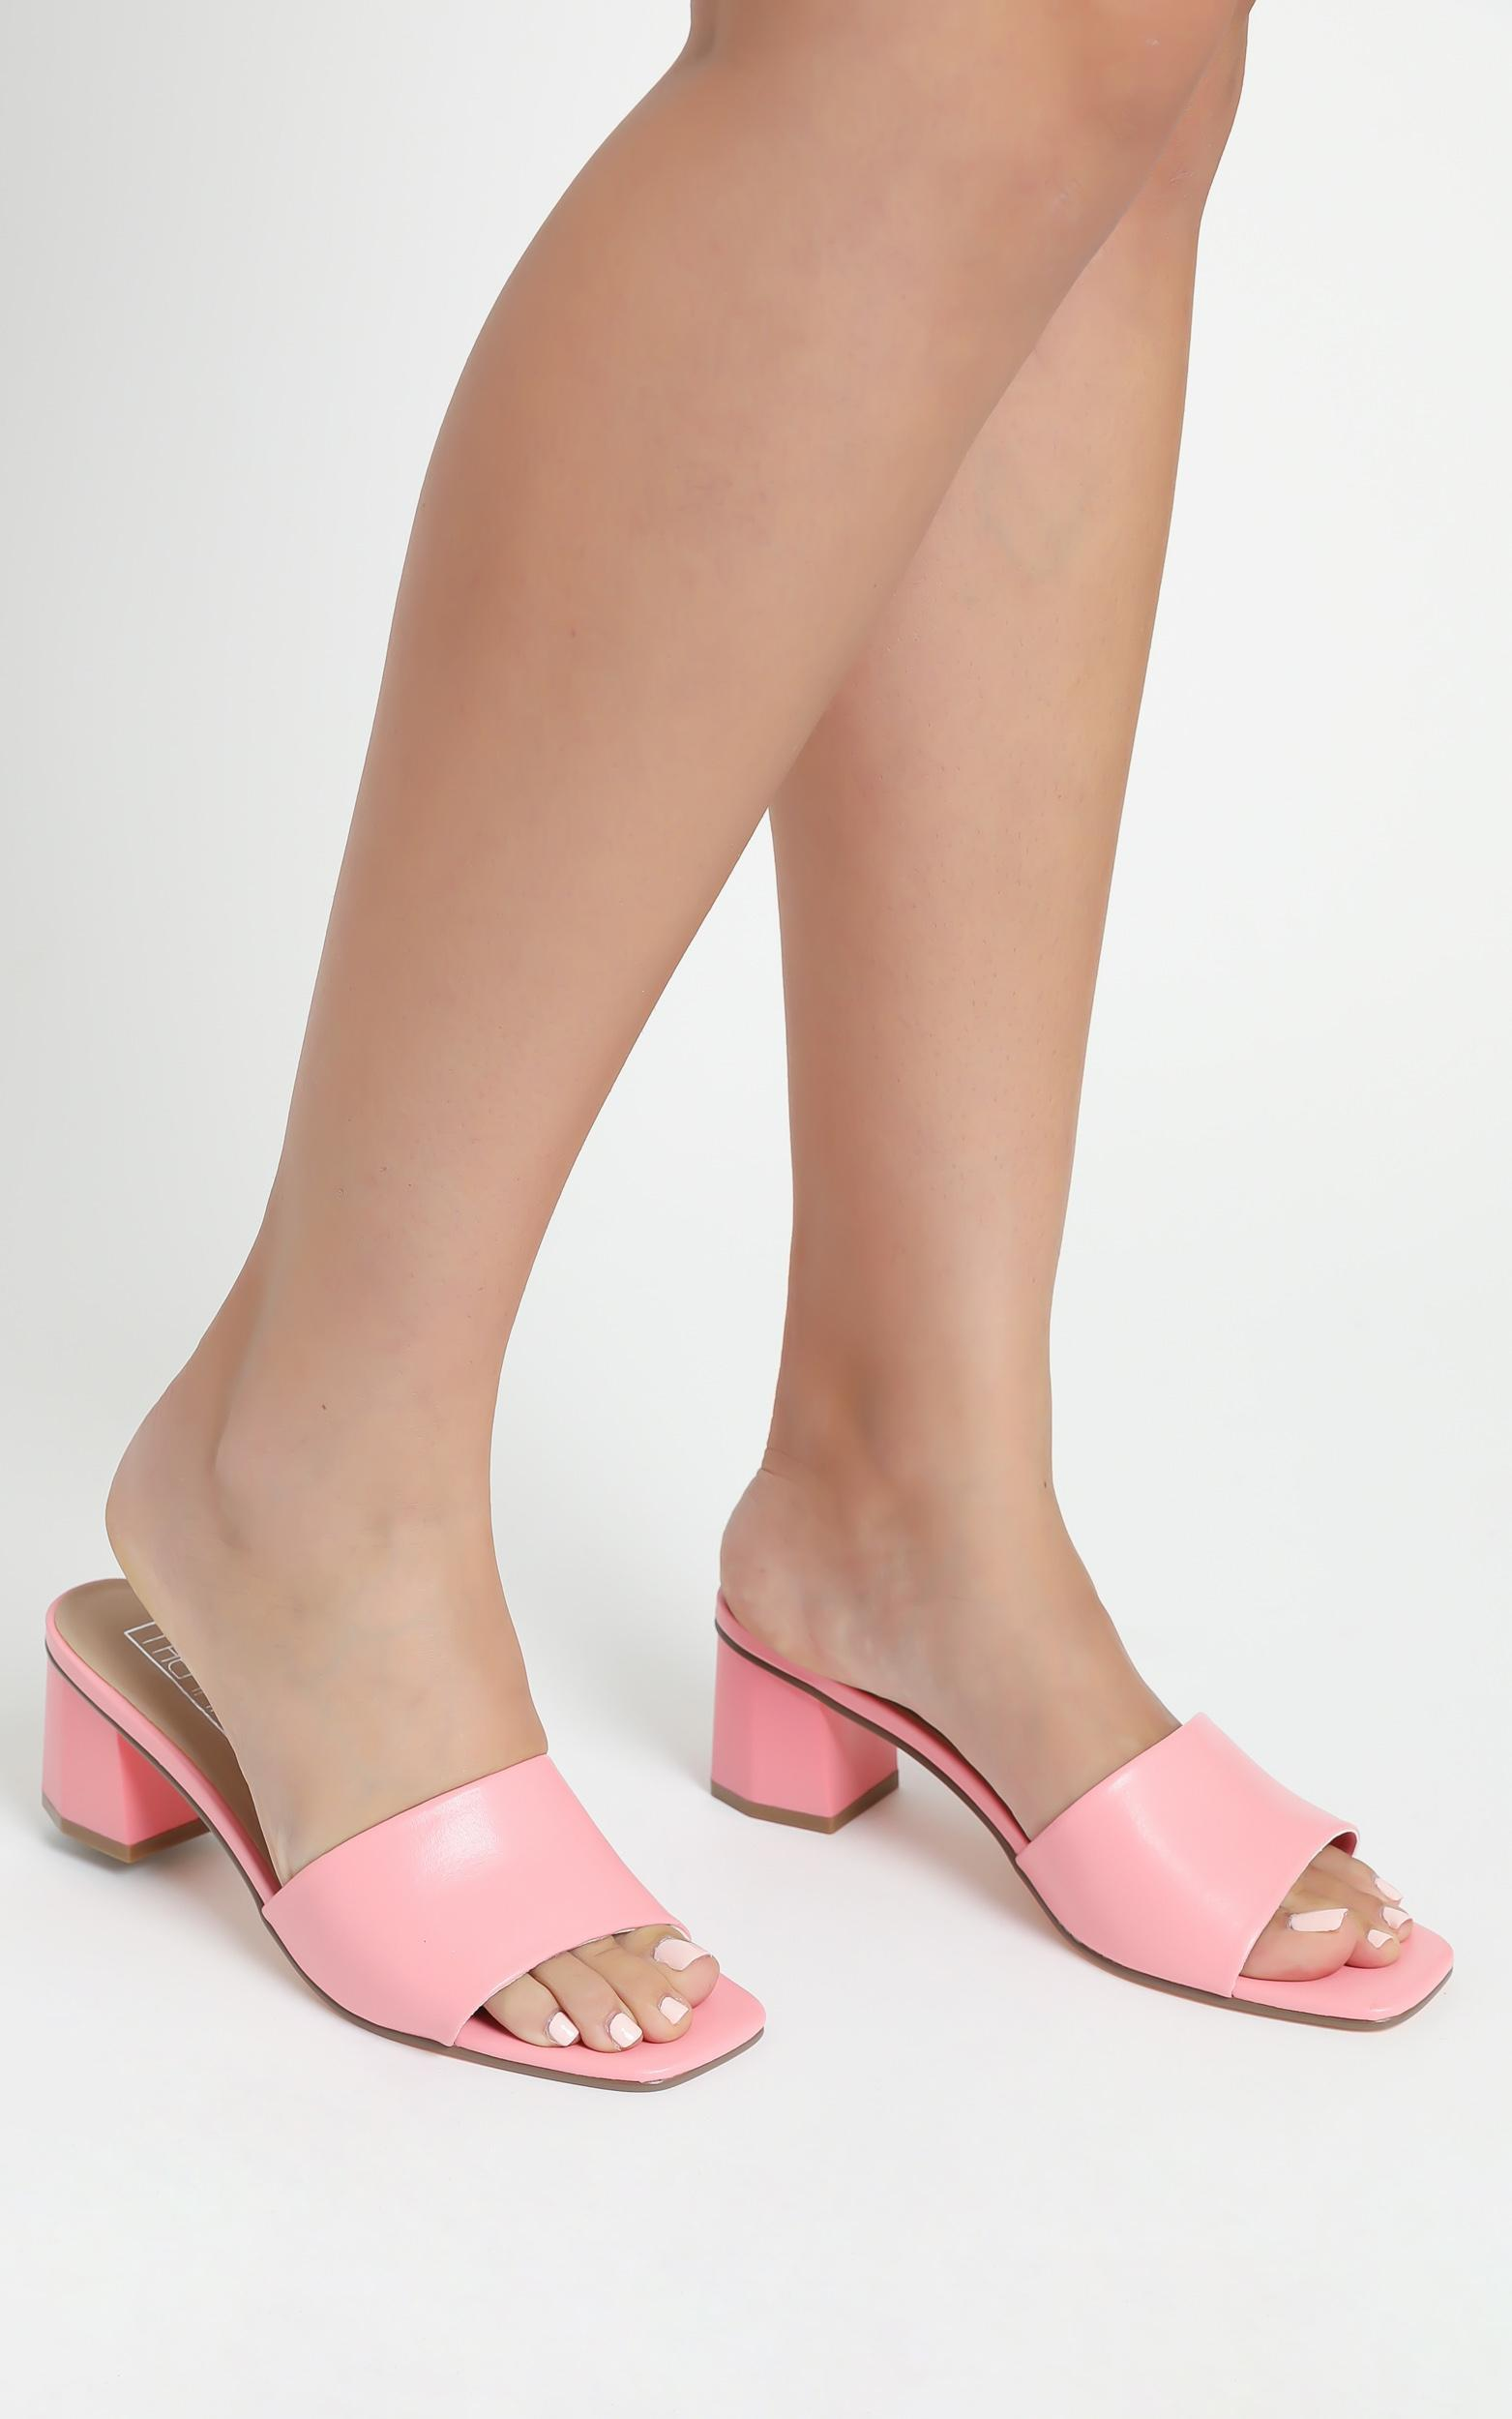 Therapy - Nyla Heels in Pink - 05, PNK2, hi-res image number null